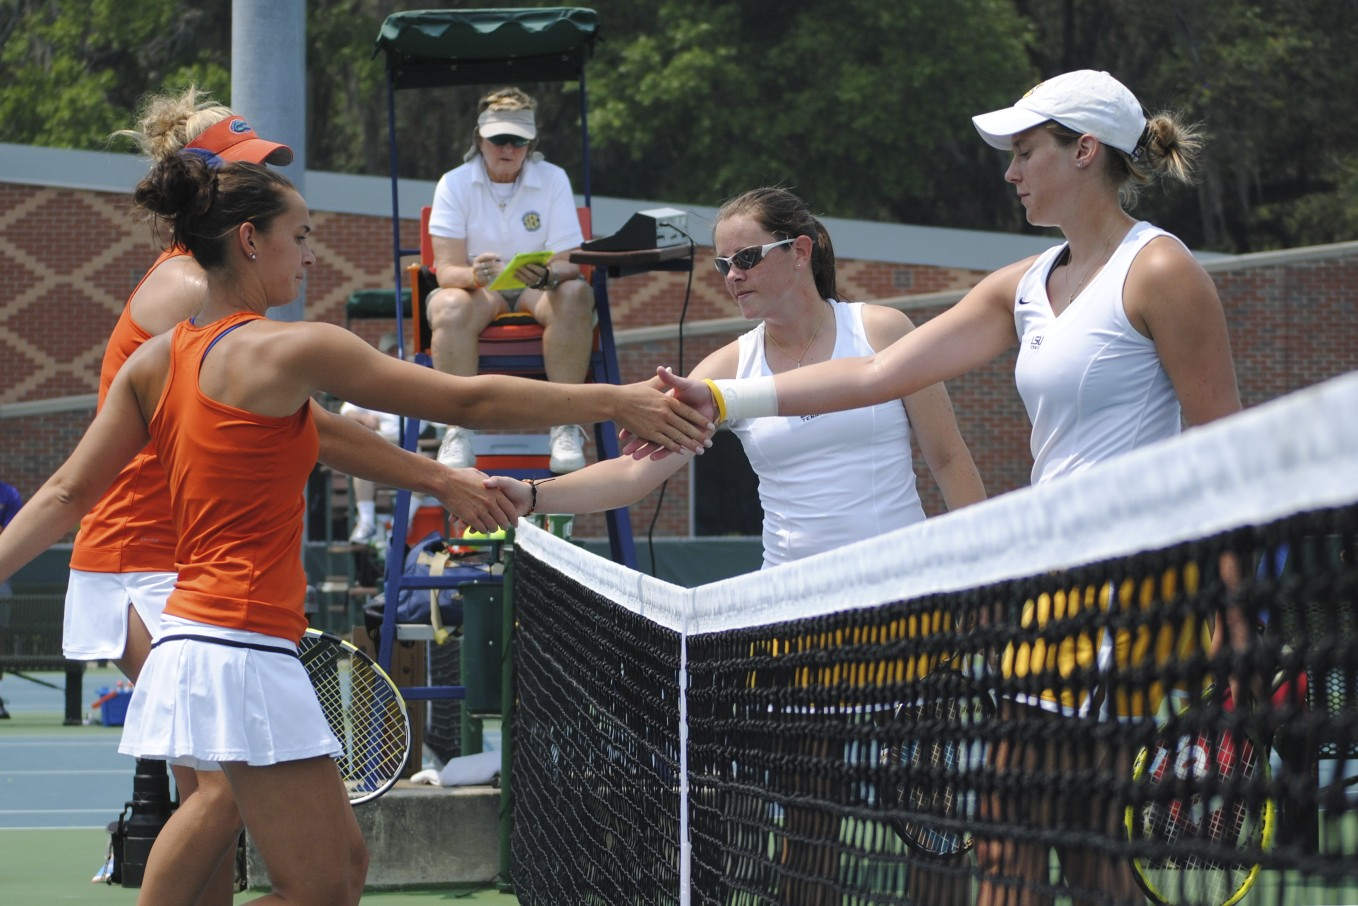 Florida's Allie Will and Sofie Oyen win their doubles match 8-1.